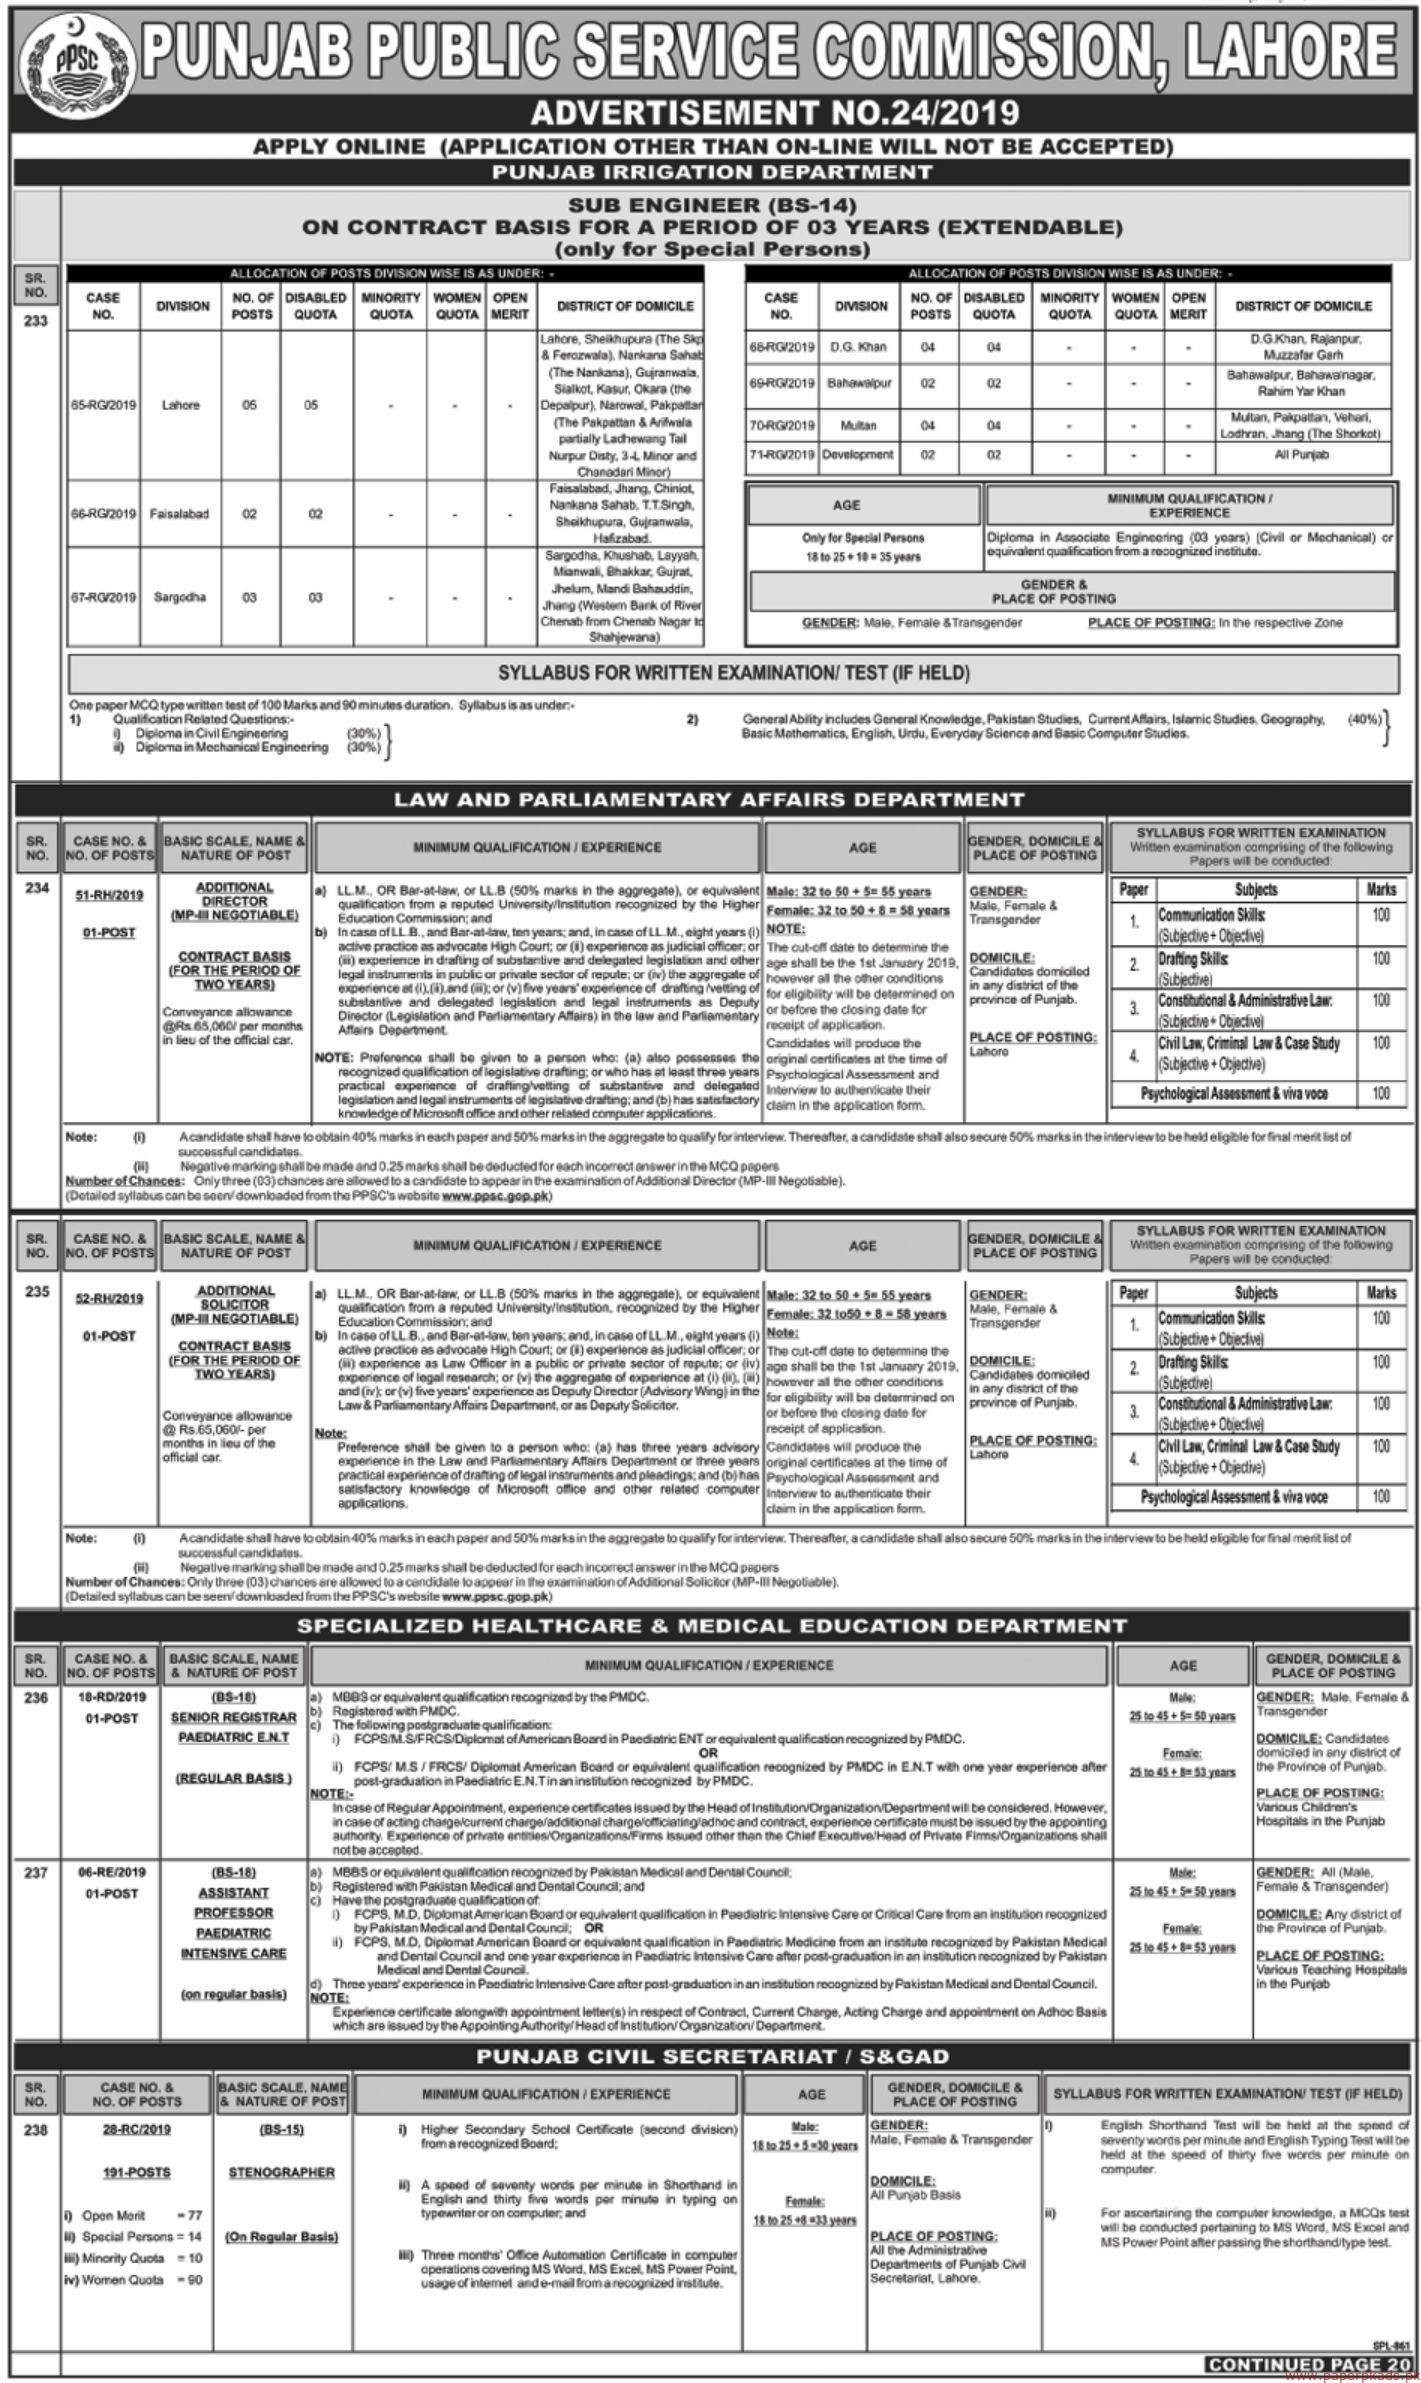 Punjab Public Service Commission (PPSC) Advertisement No 24-2019 Latest Page-1